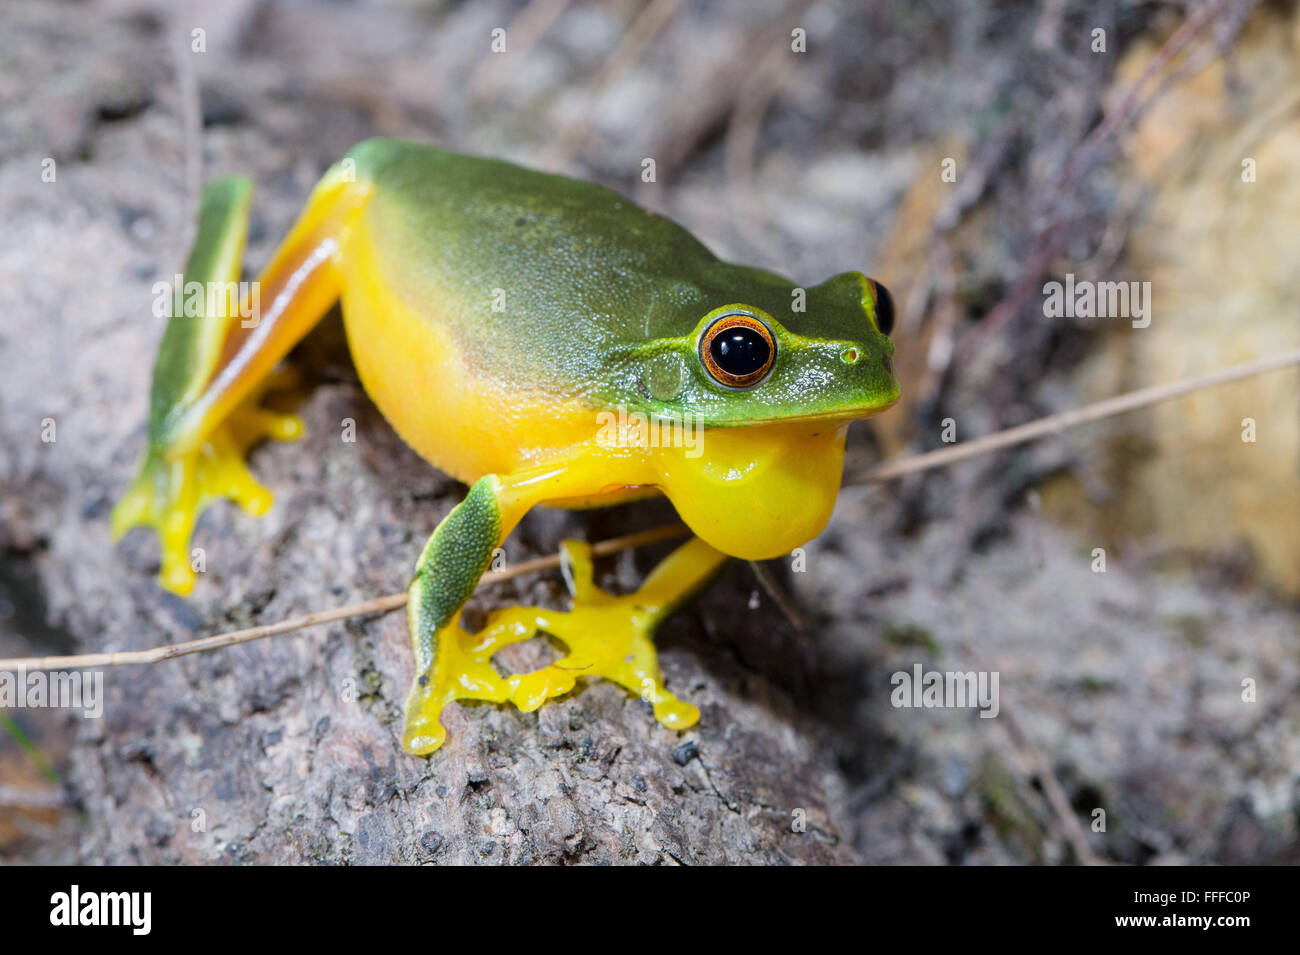 Dainty Green Tree Frog (Litoria gracilenta). also known as Graceful Tree Frog,  inflating throat sac while calling, - Stock Image